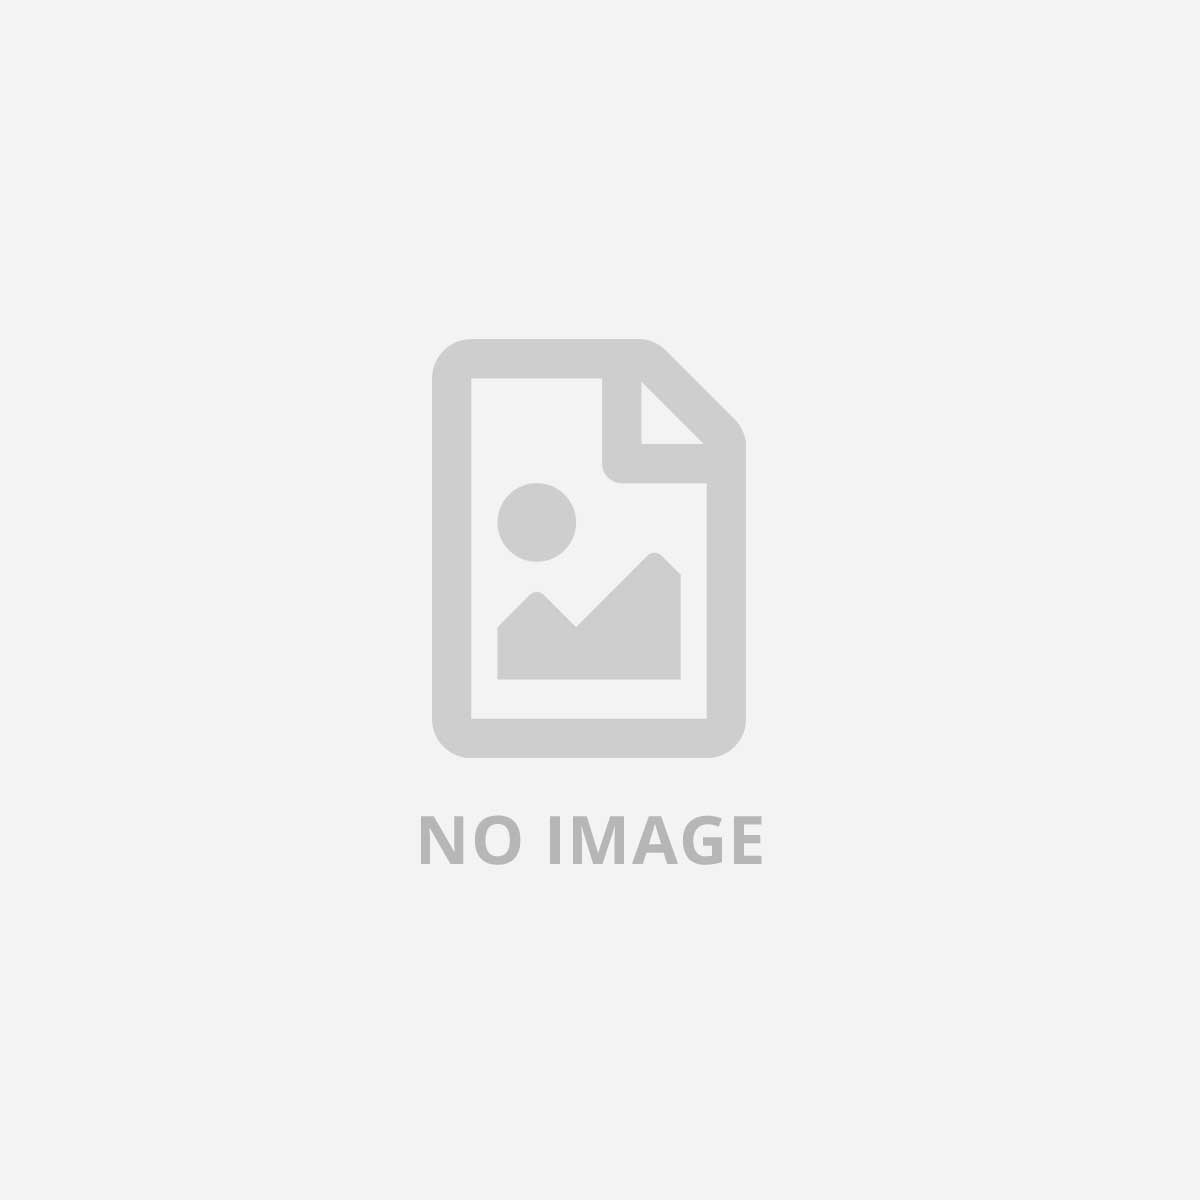 ELECTRONIC ARTS XONE NBA LIVE 18:THE ONE EDITION